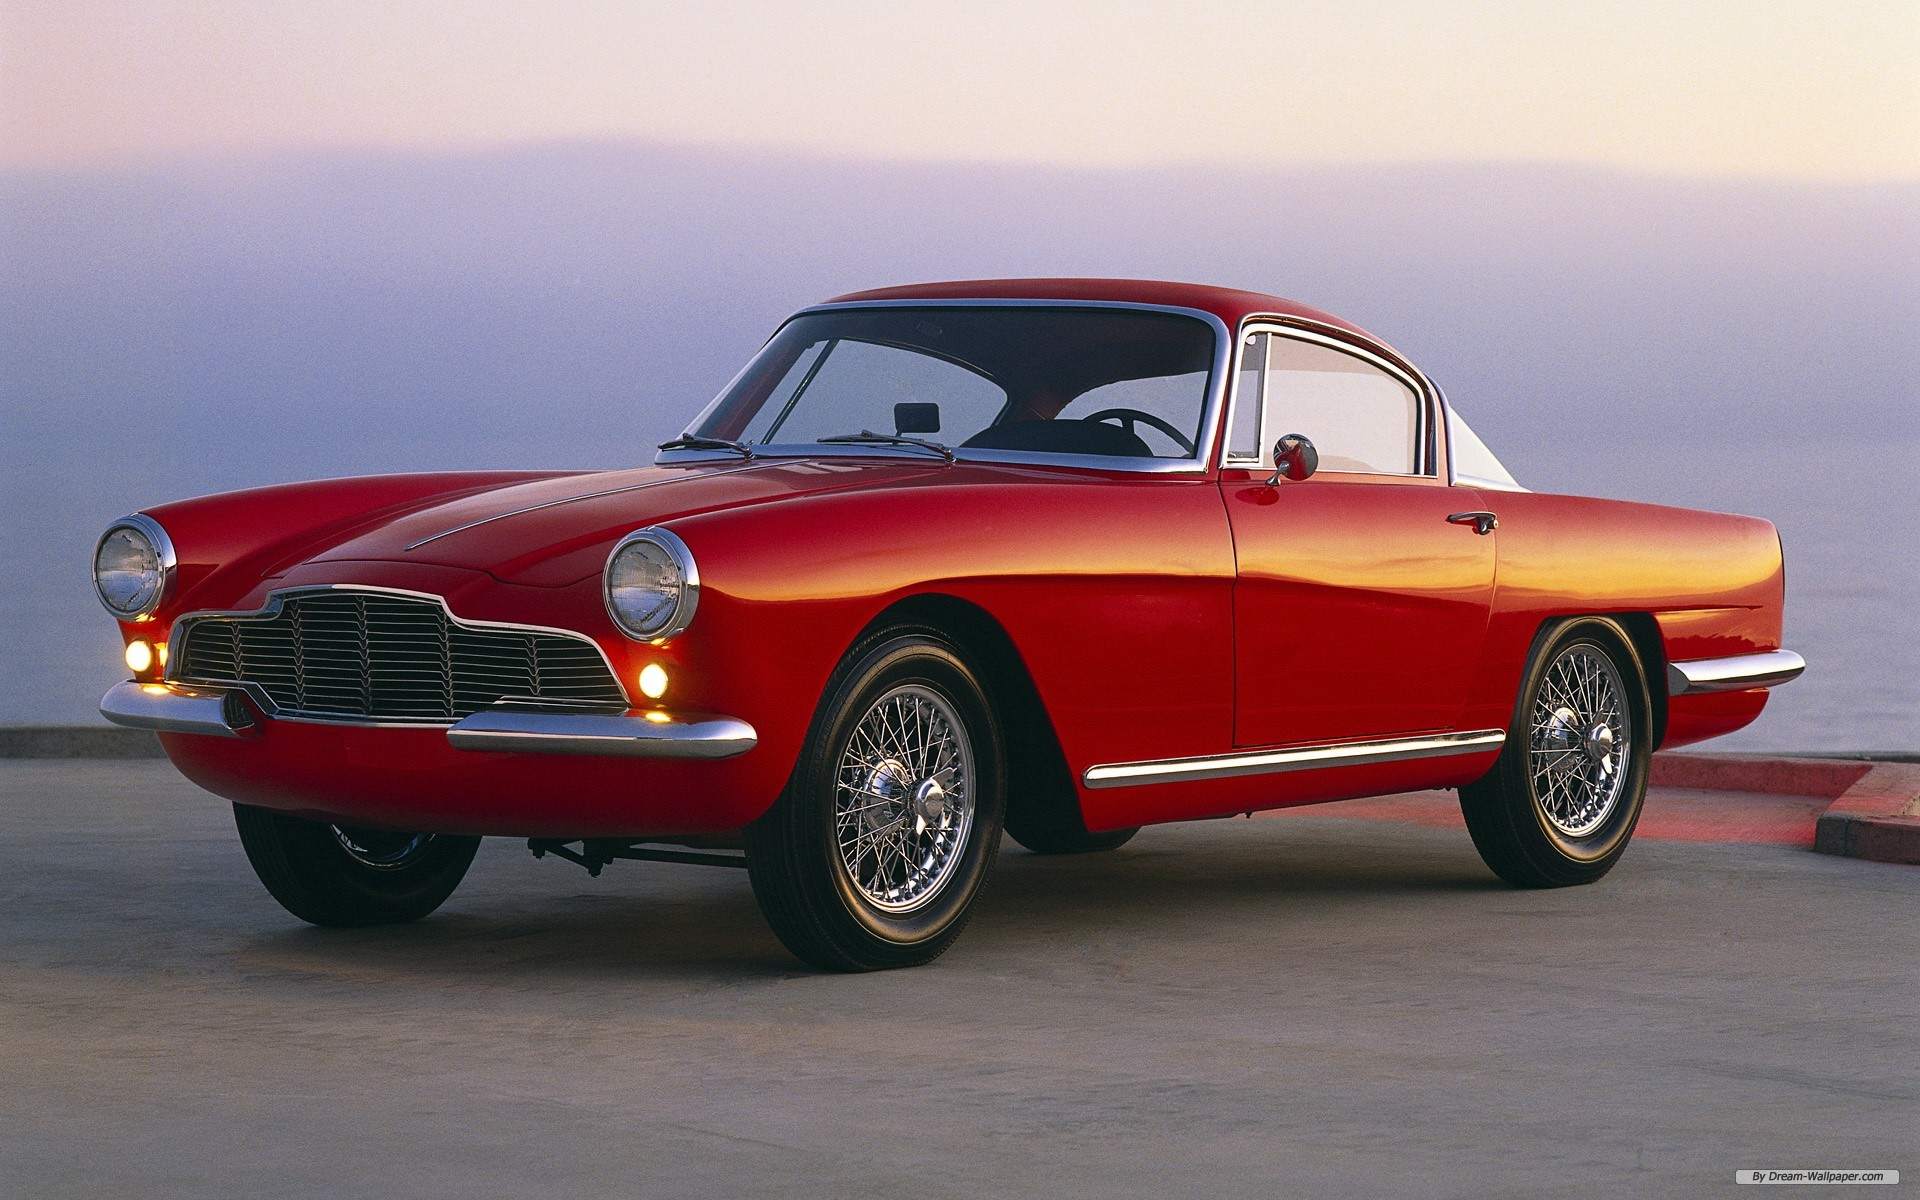 Free Wallpaper - Free Auto wallpaper - Classic sports car wallpaper ...